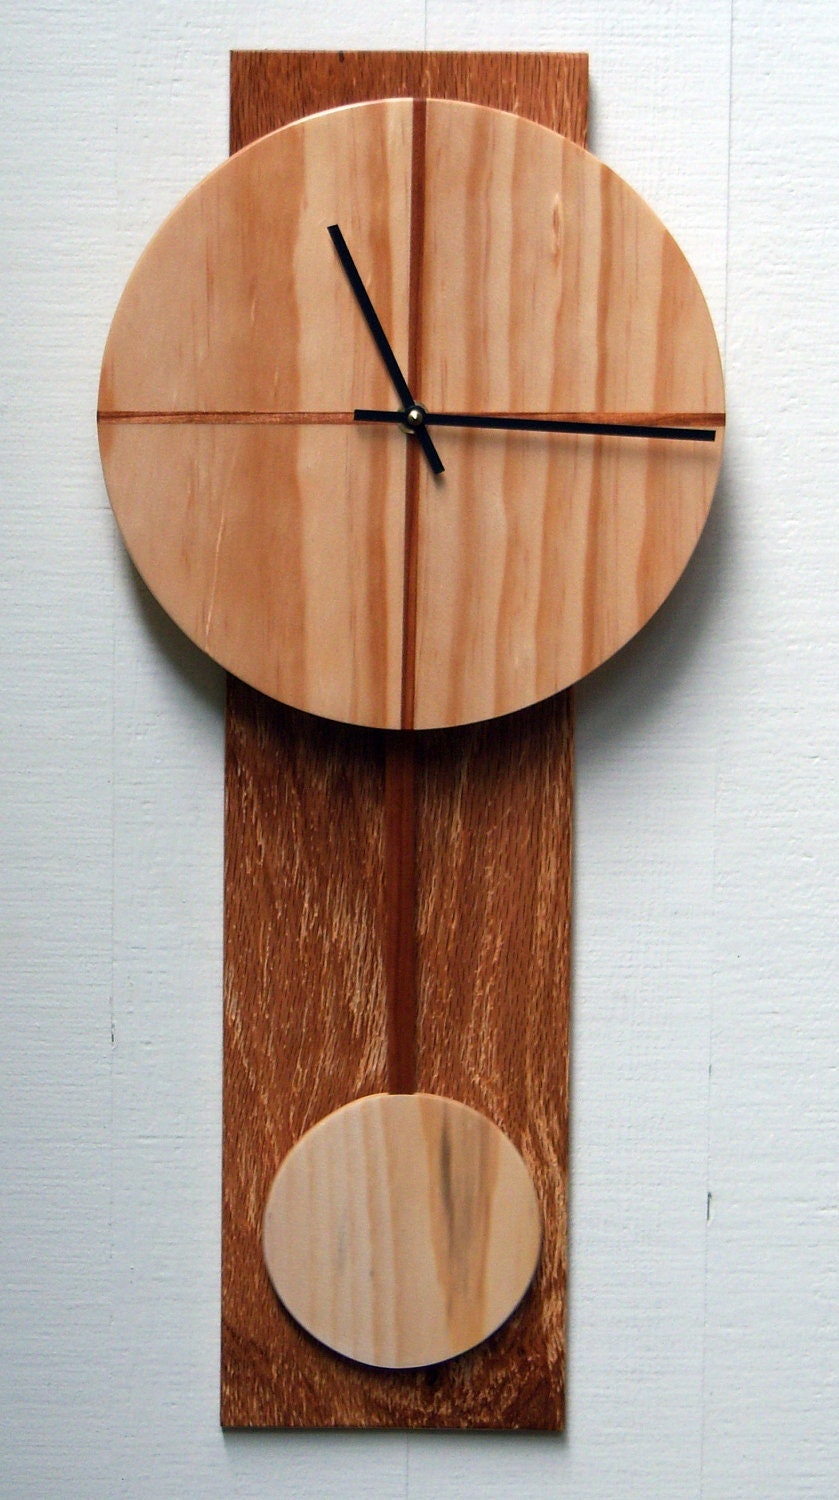 Modern wood wall clock with pendulum by djwubs on etsy - Contemporary wall clocks with pendulum ...